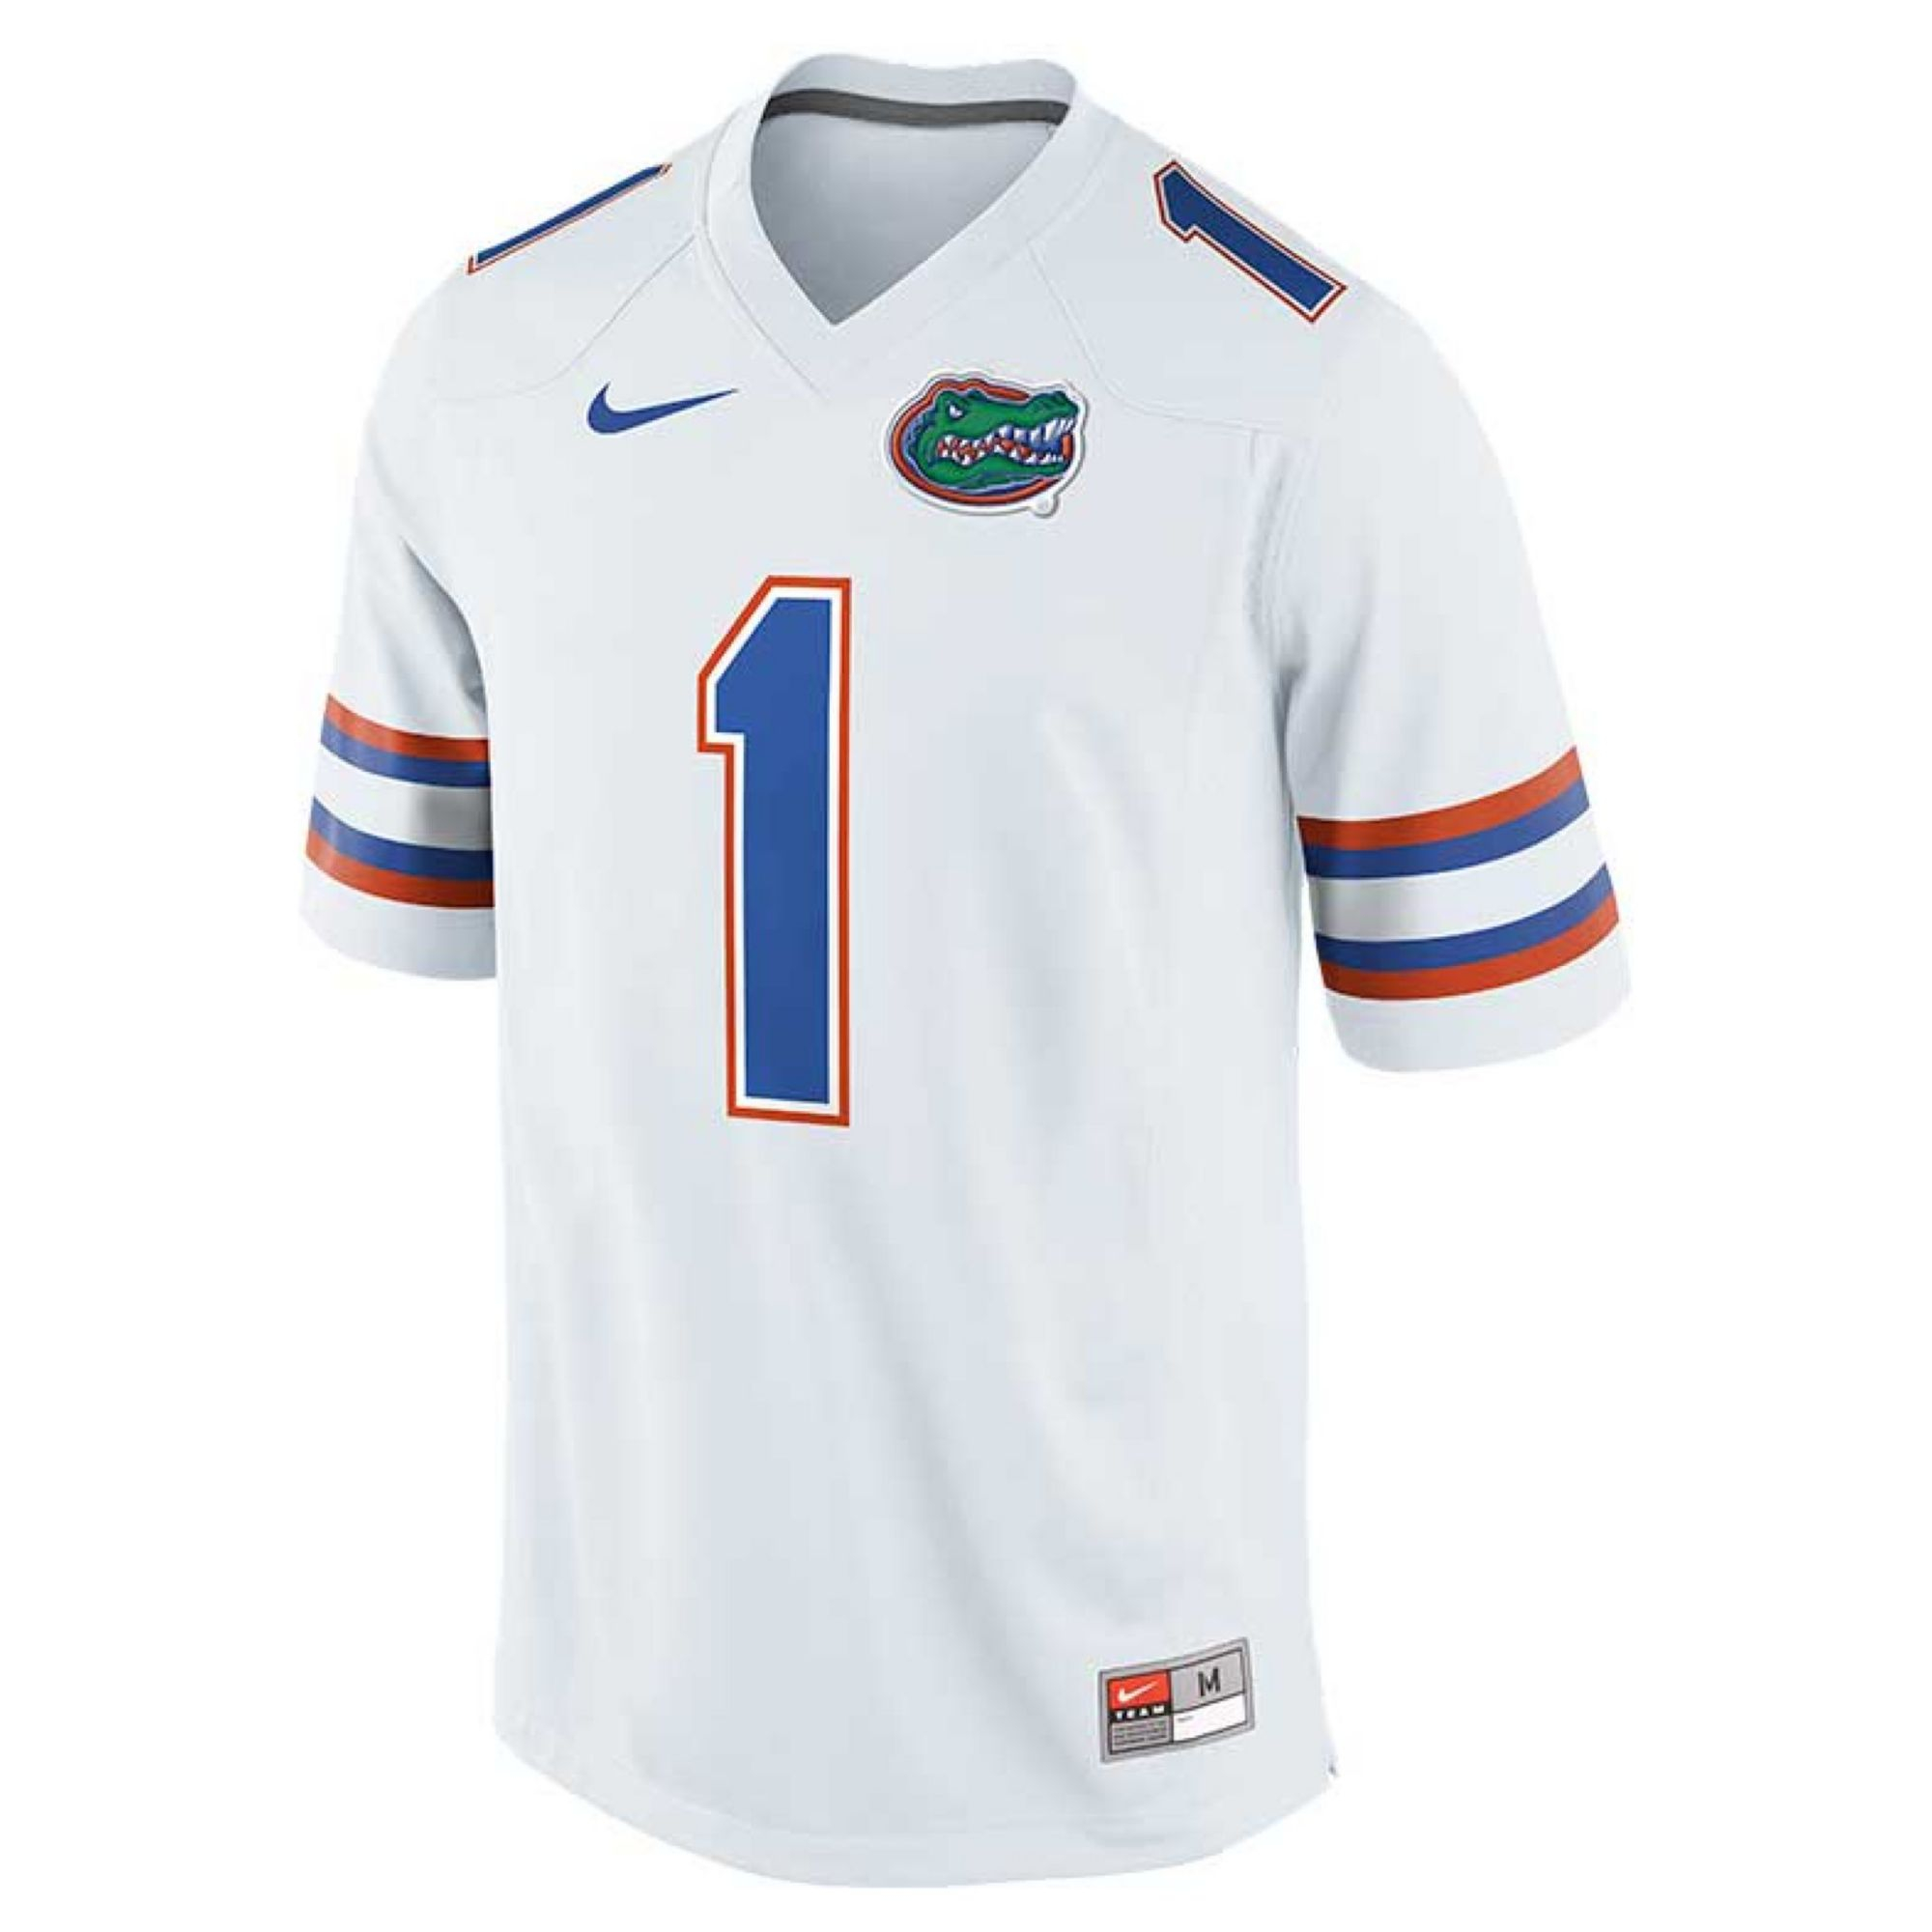 Nike Men S Florida Gators Replica Football Game Jersey In White For Men Lyst